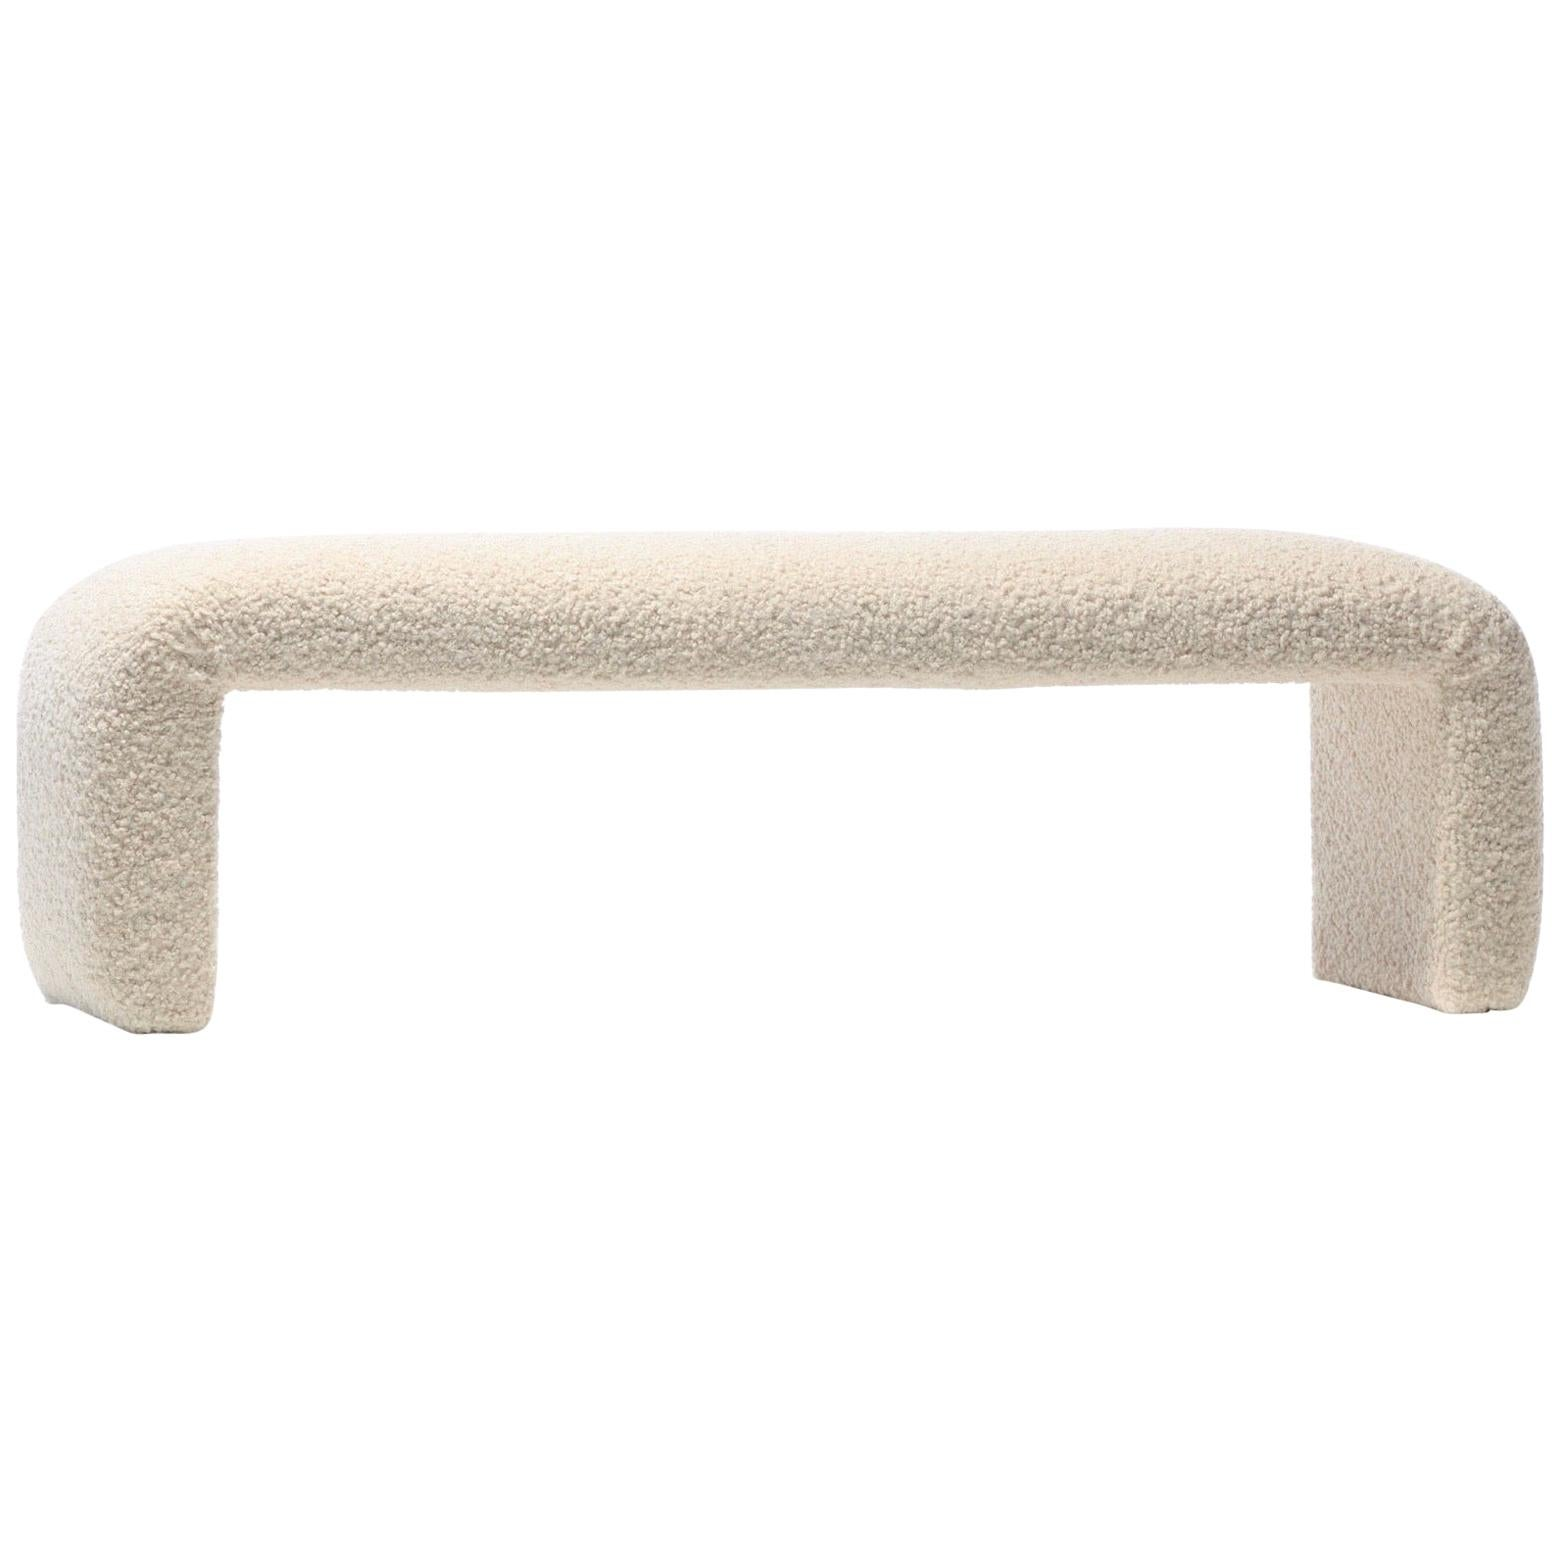 Karl Springer Style Large Waterfall Bench in Ivory Bouclé